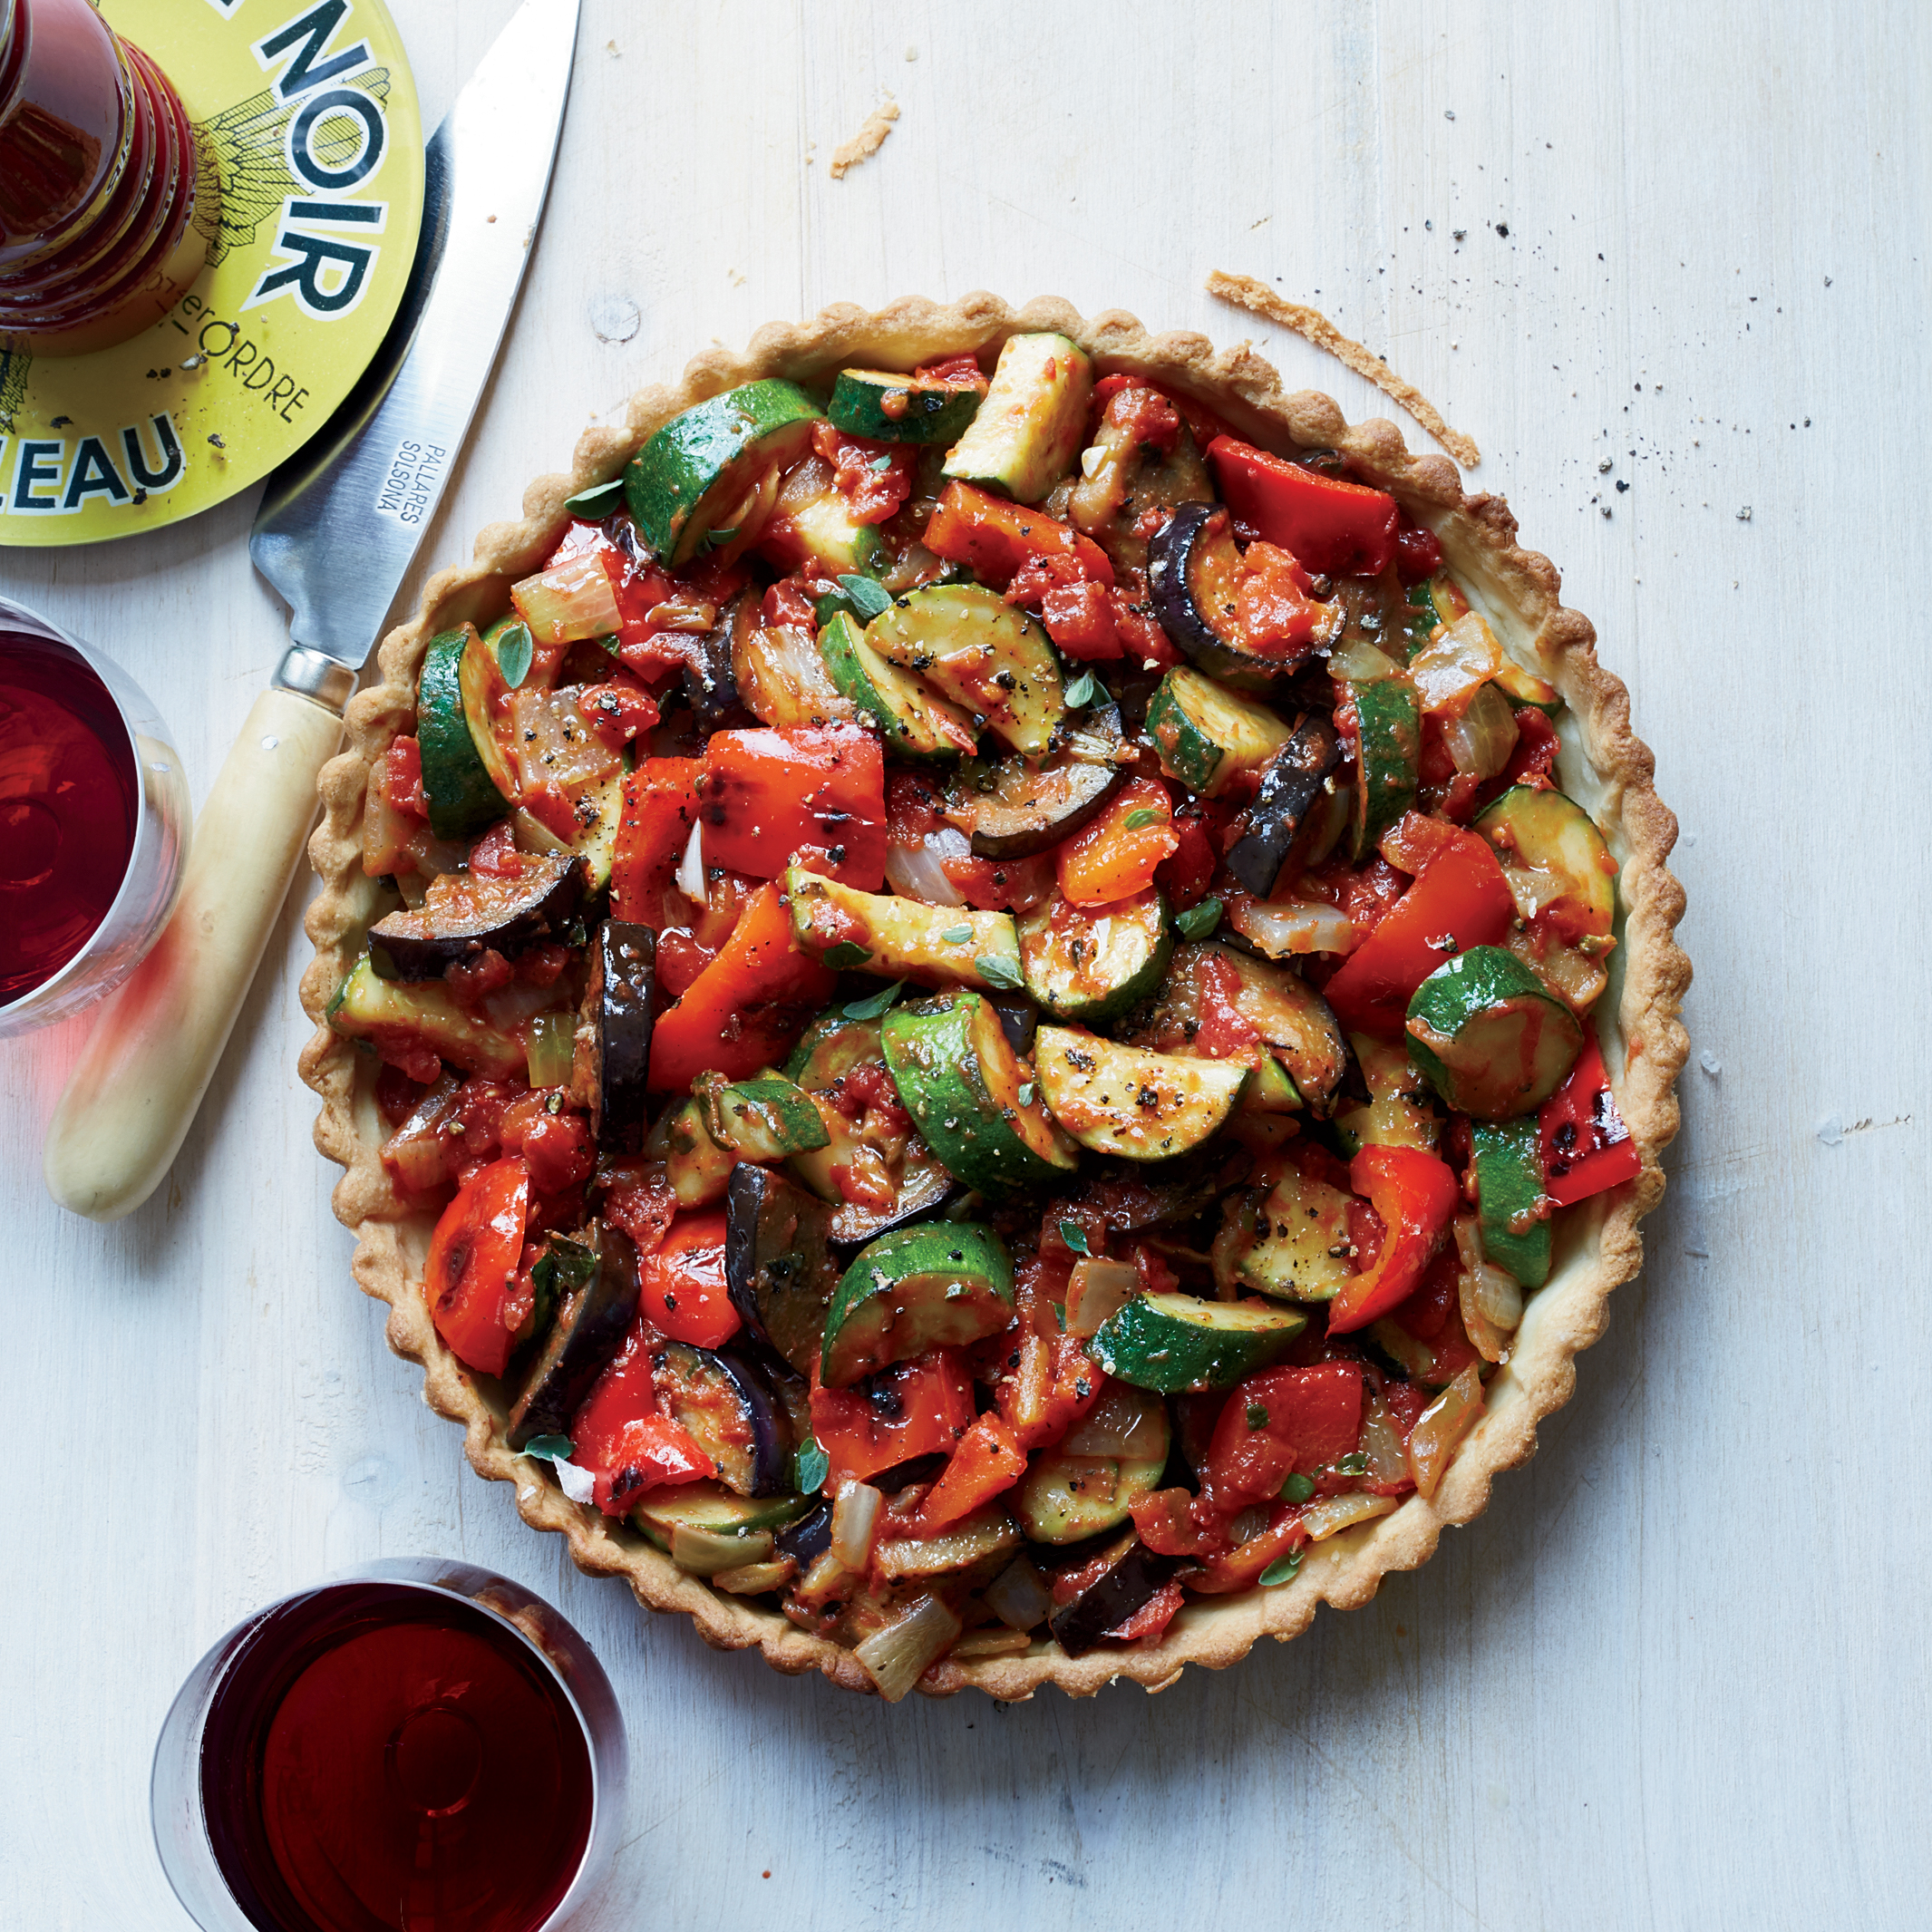 Ratatouille Tart Recipe - Koren Grieveson | Food & Wine